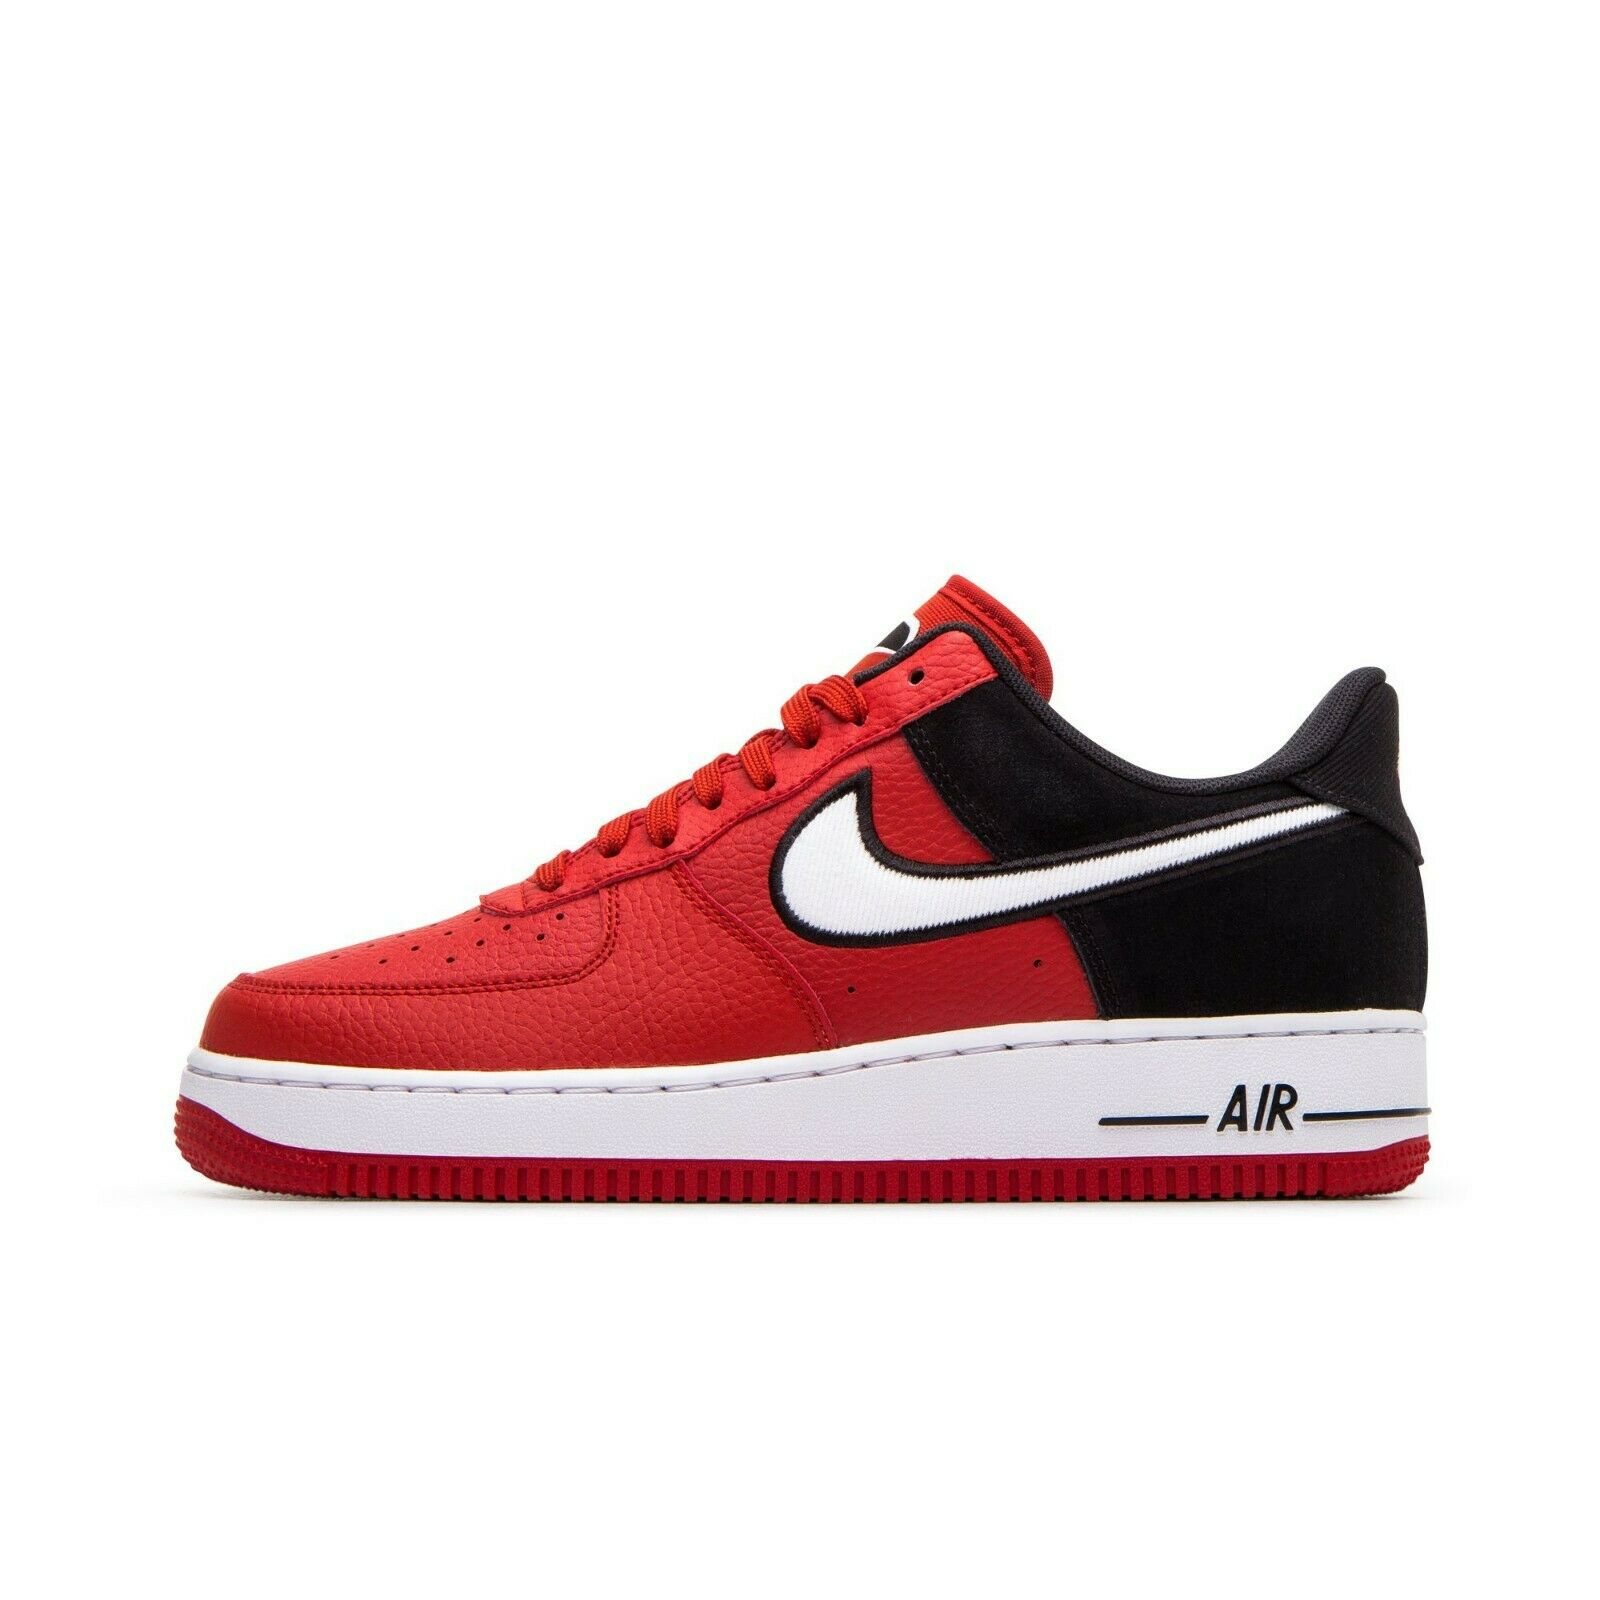 SCARPE SNEAKERS UNISEX NIKE ORIGINAL AIR FORCE 1 '07 LV8 1 AO2439 PELLE P/E 2019